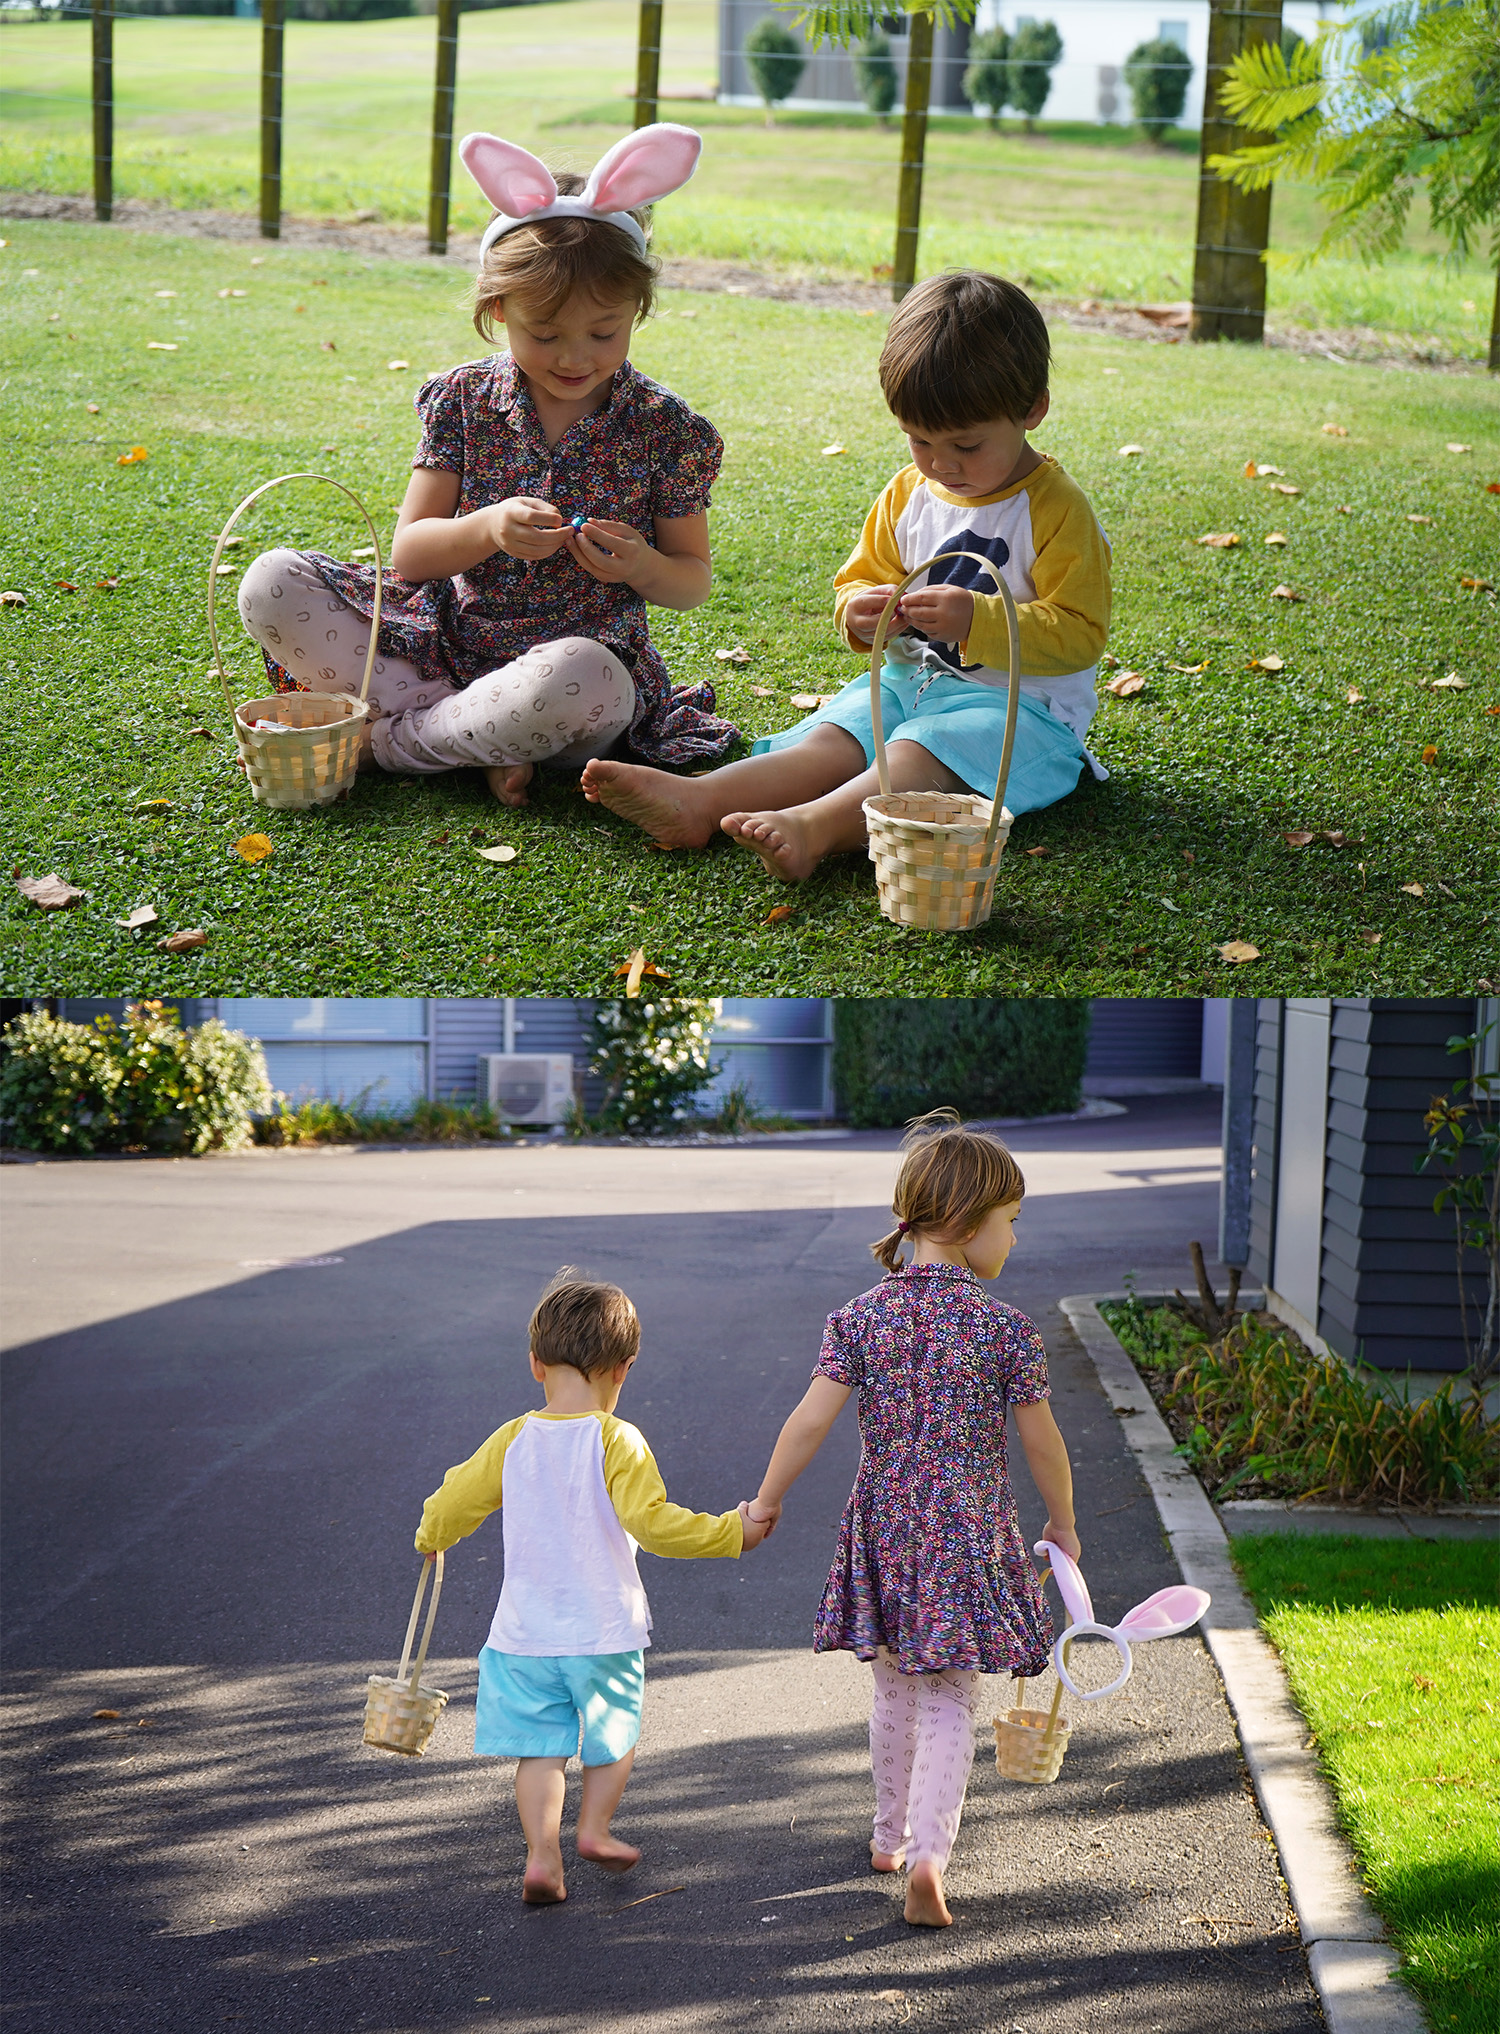 children lifestyle photo by Susanna Lin Photography Tauranga